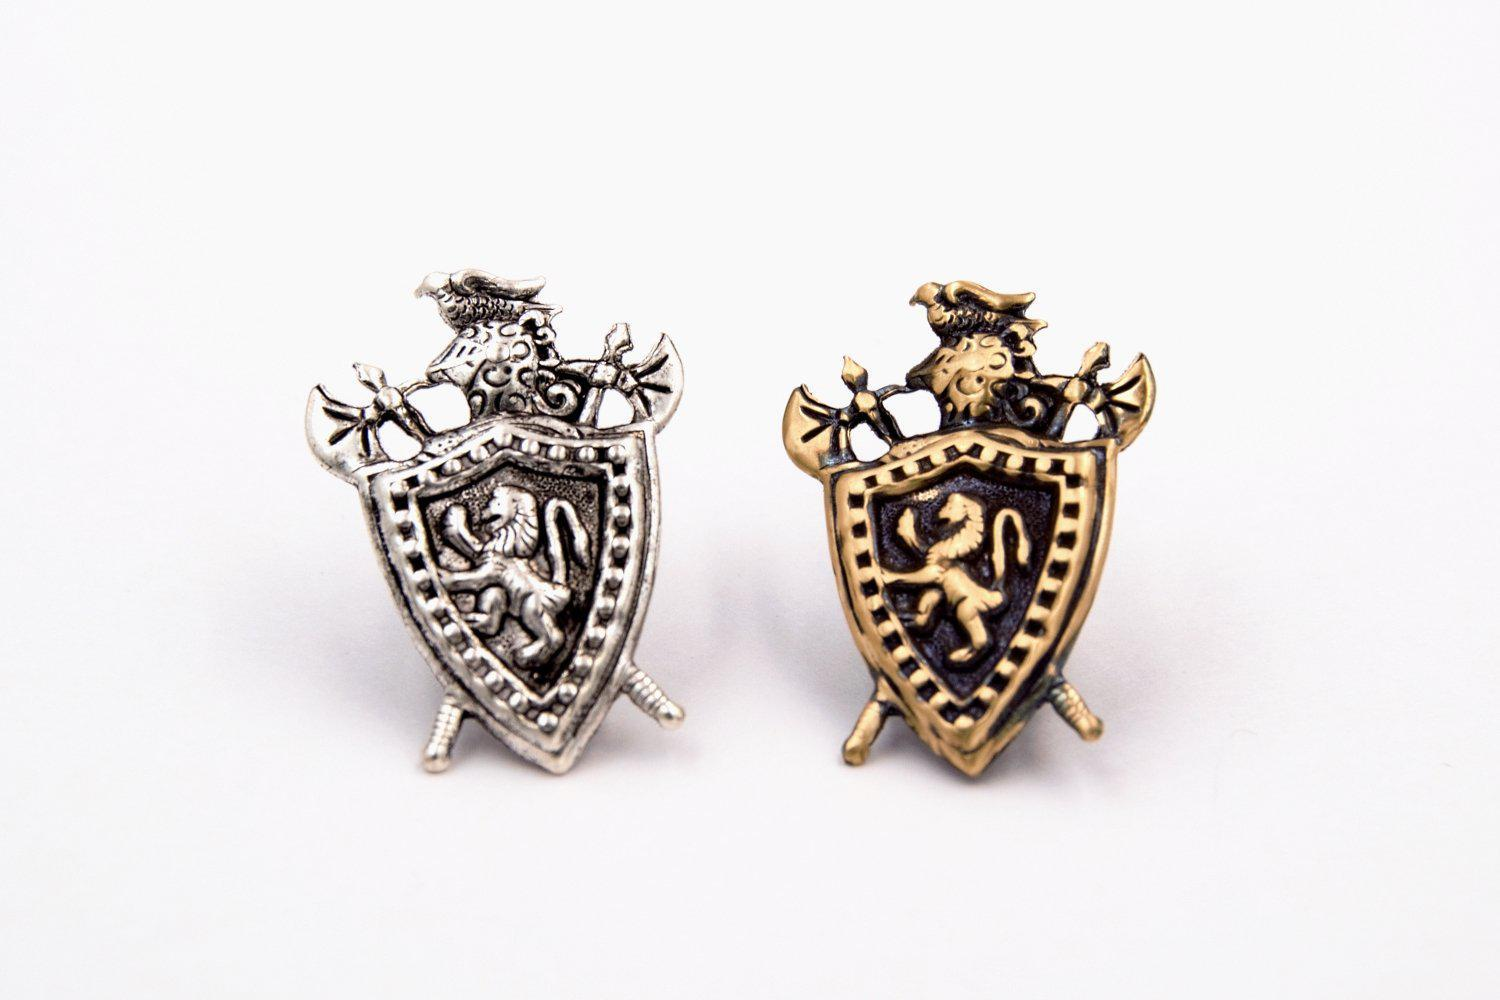 Medieval Knight Shield with Rampant Lion Tie Tack (Men's Jewelry, Silver Plated or Antiqued Brass) fripparie